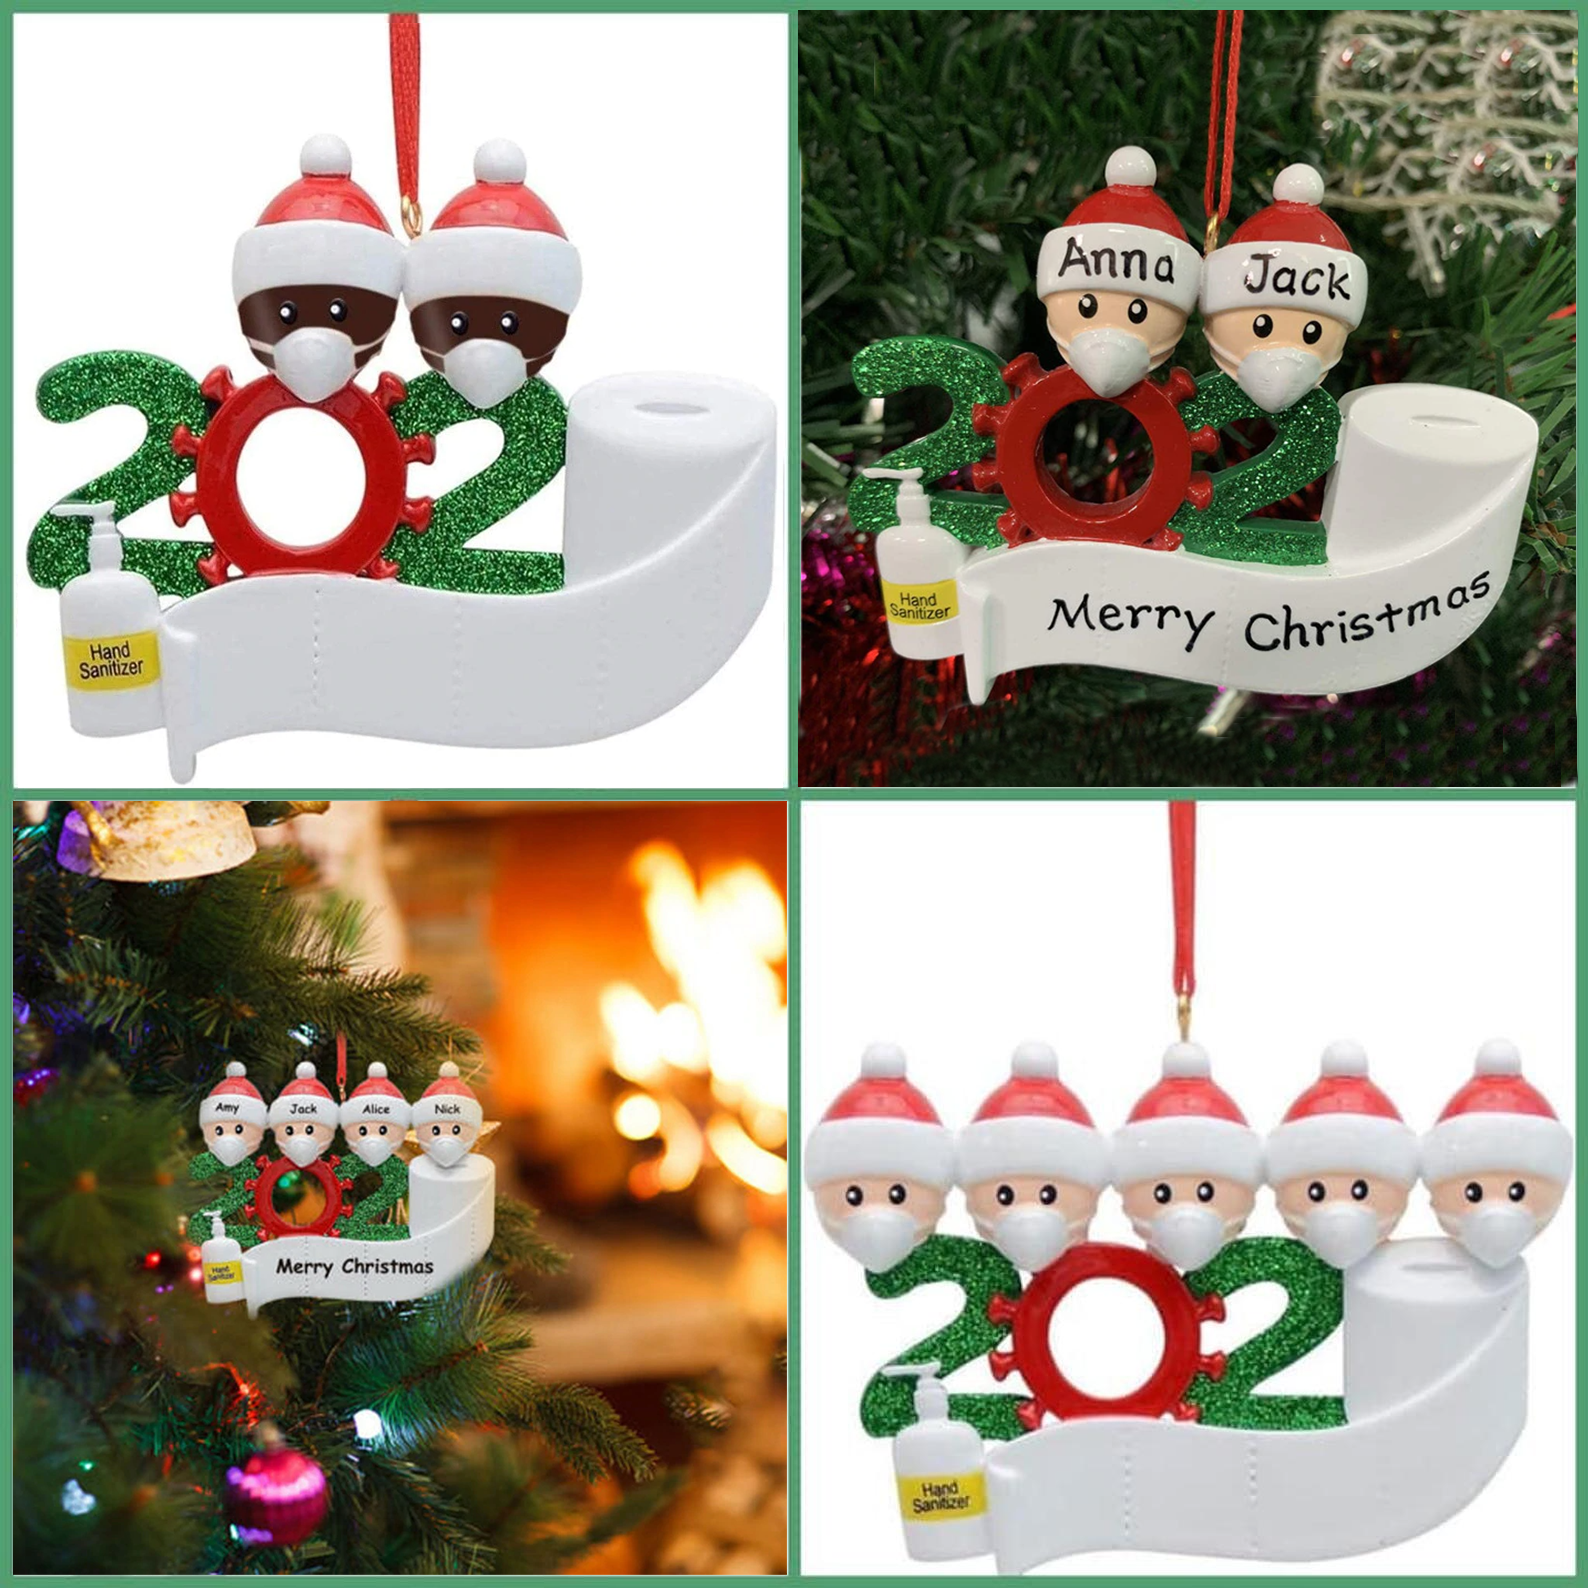 Christmas Ornament 2020 With Mask, Sanitizer & Toilet Paper - [PERSONALIZABLE]